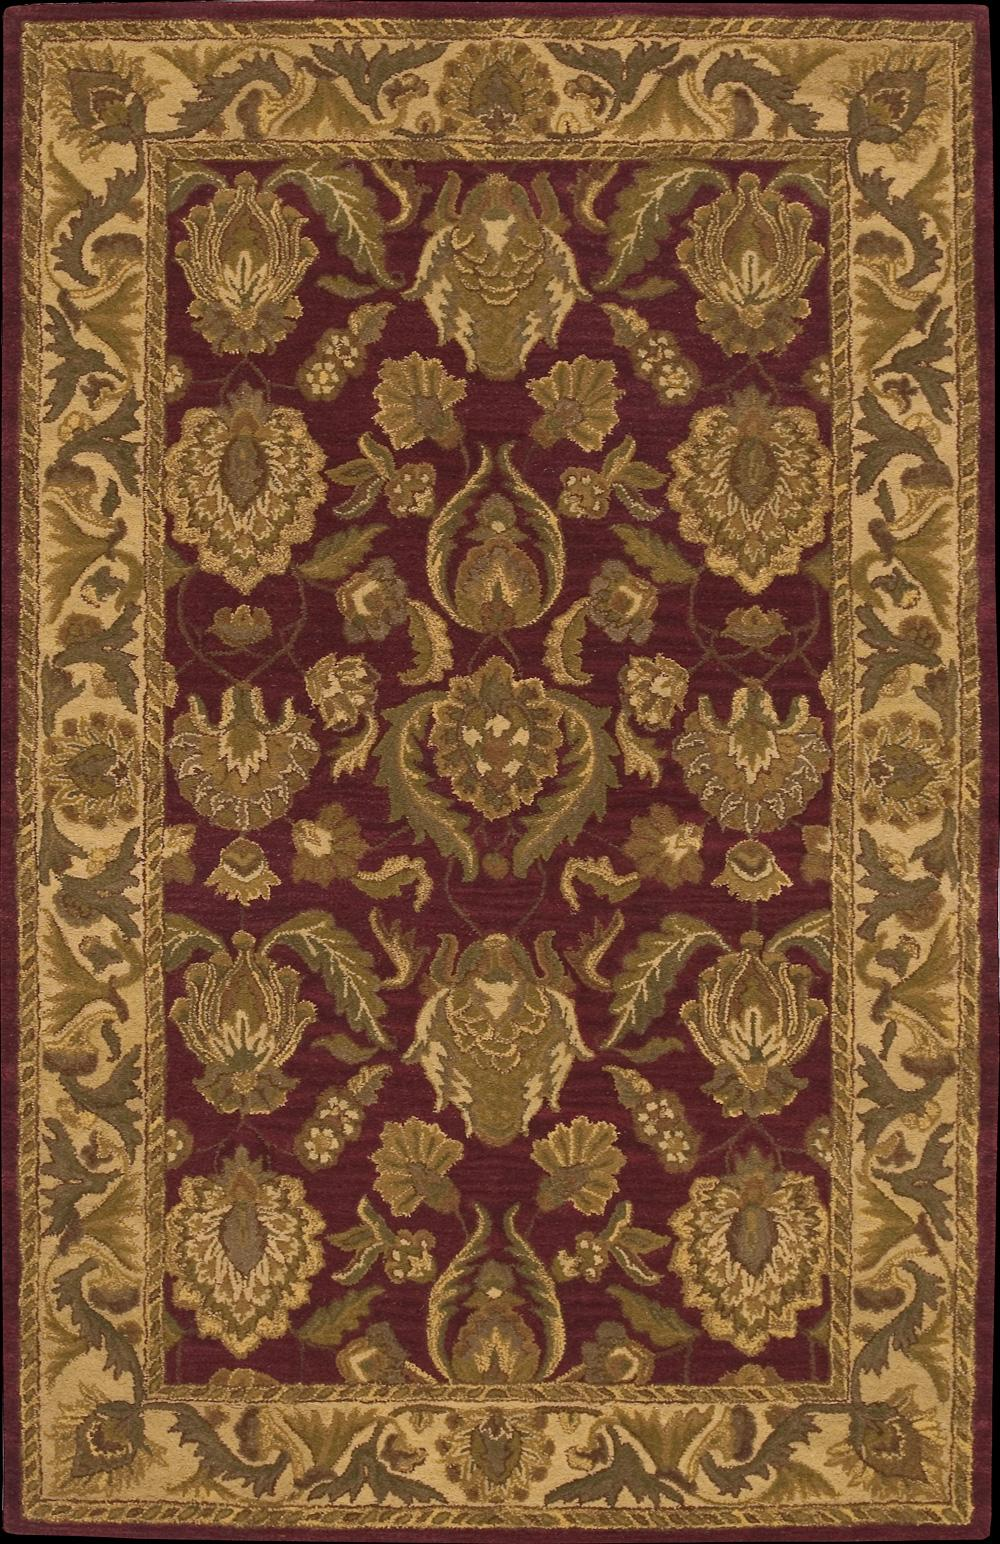 Nourison India House Area Rug 5' x 8' - Item Number: 4426